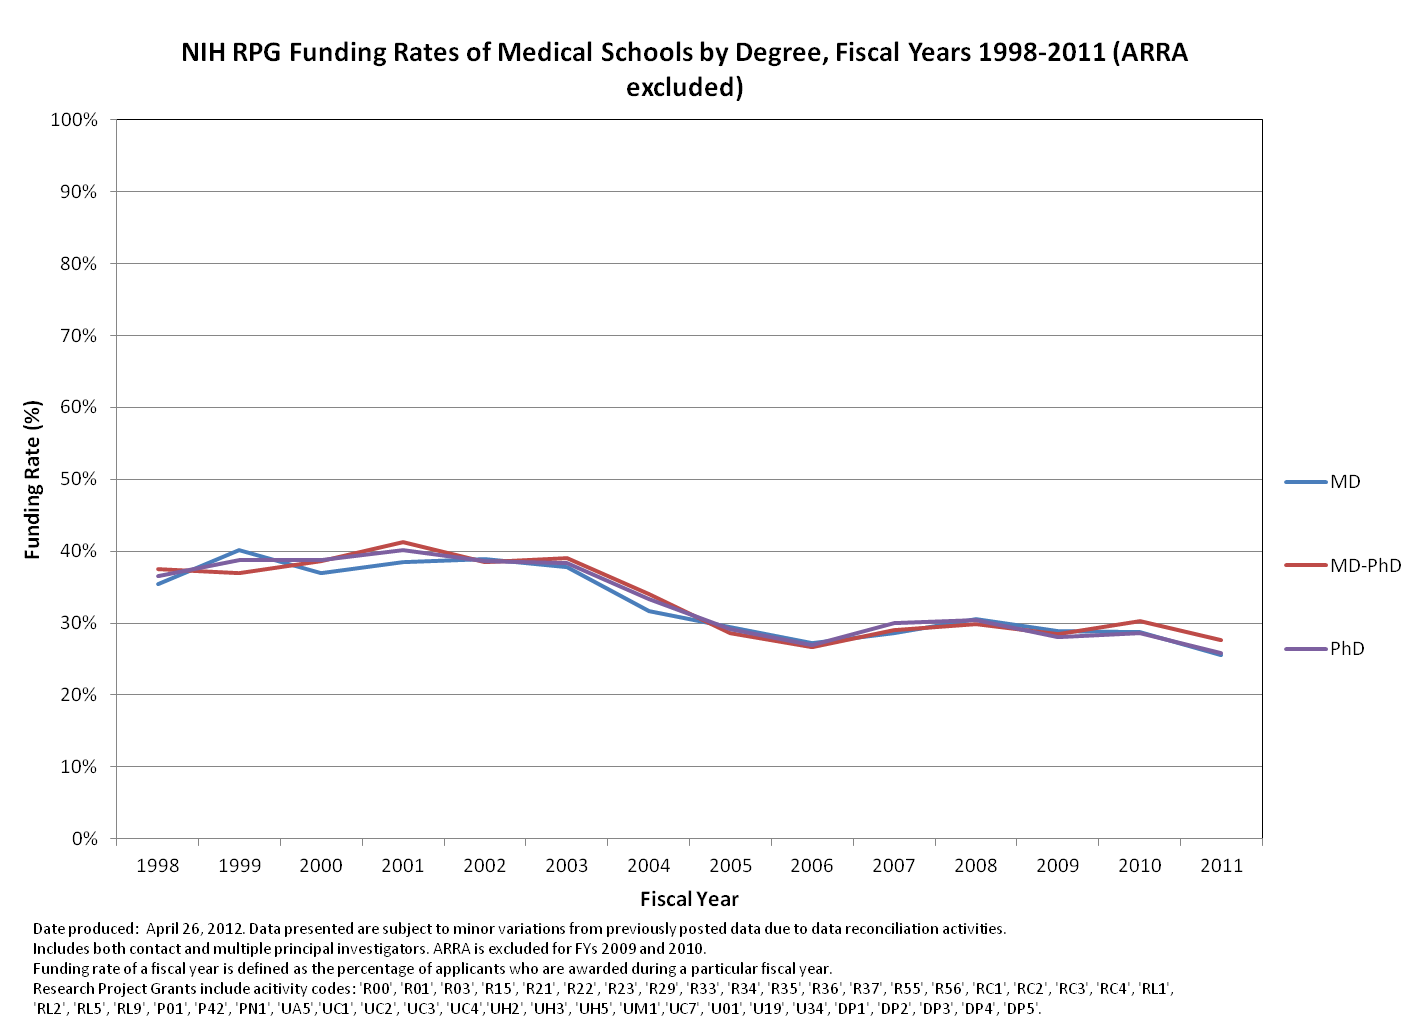 RPG funding rate 1998-2011 for medical schools